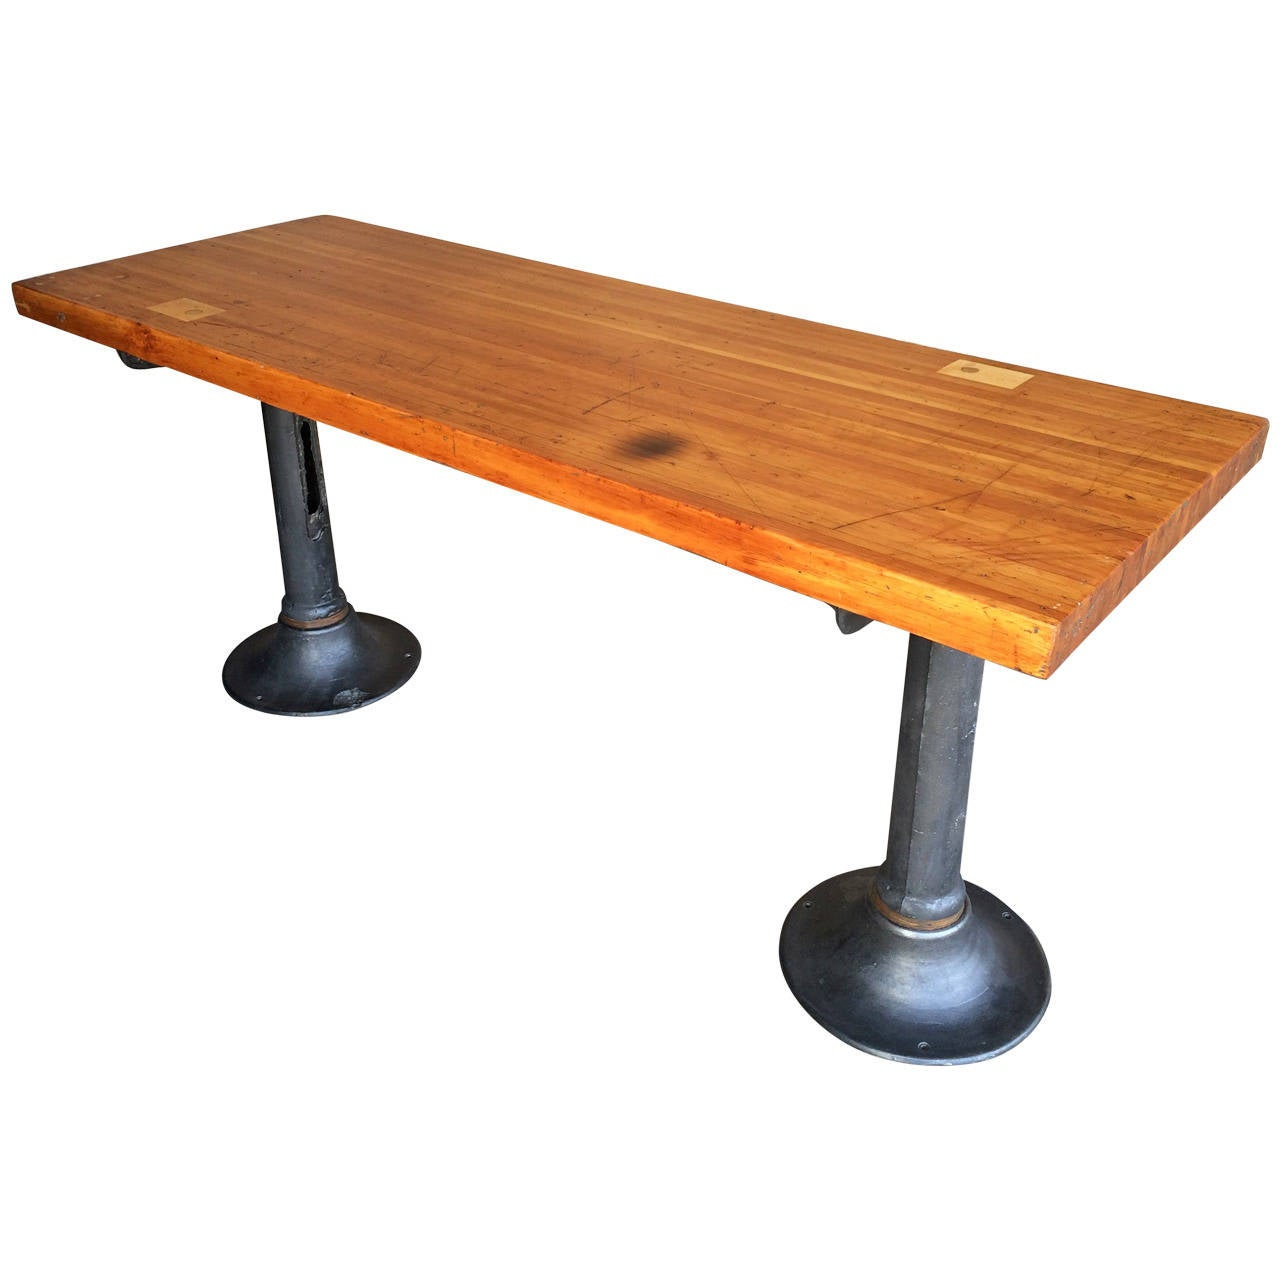 Vintage industrial bar height work table at 1stdibs for Furniture work table